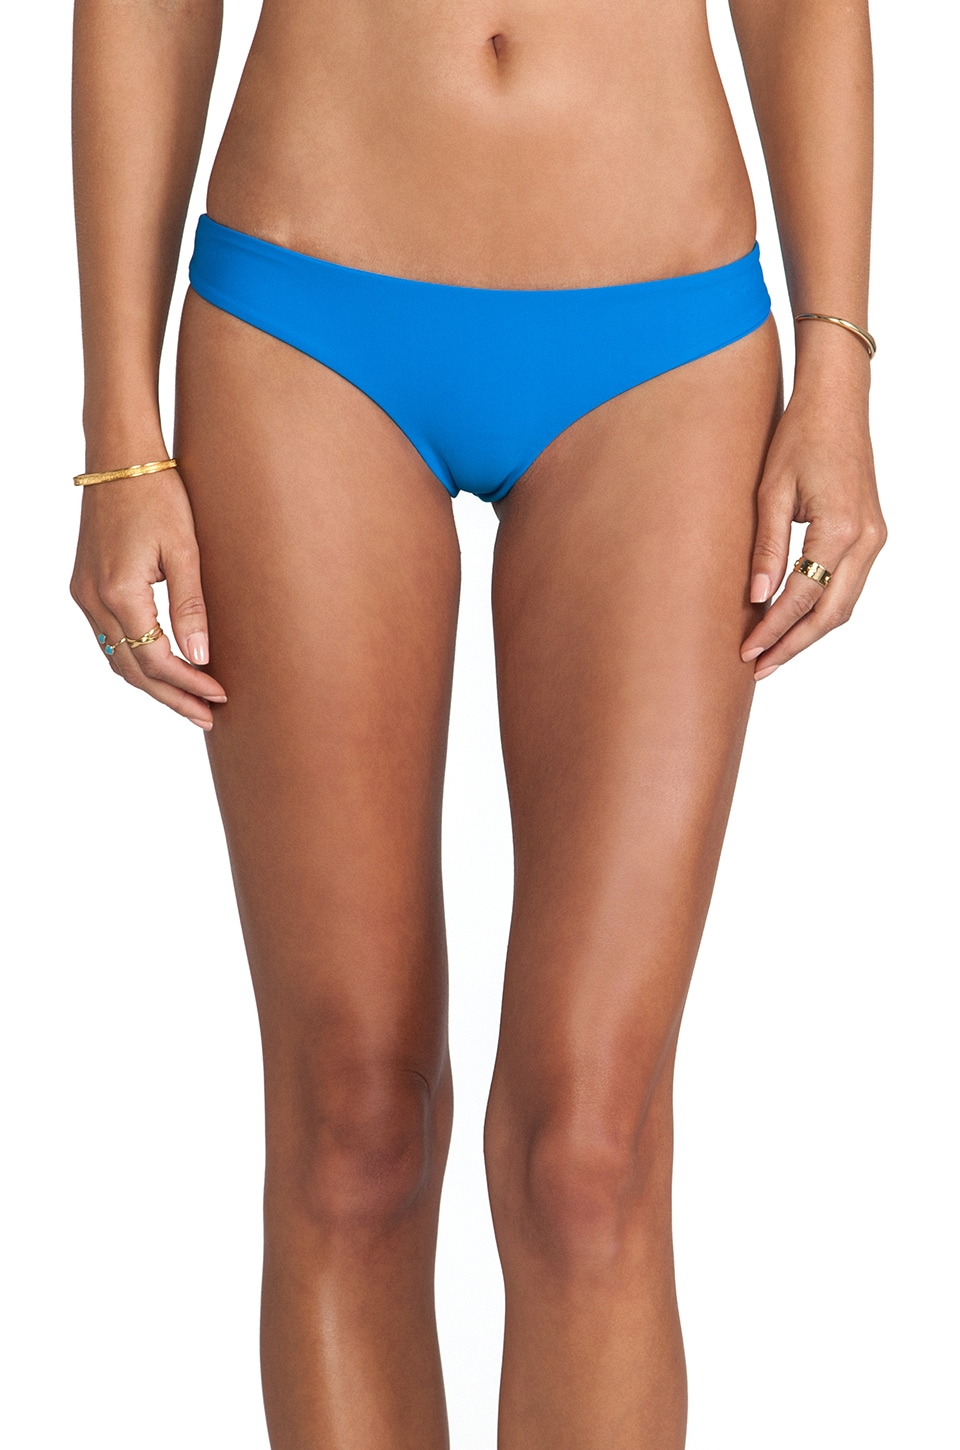 Issa de' mar Poema Bottom in Peacock Blue